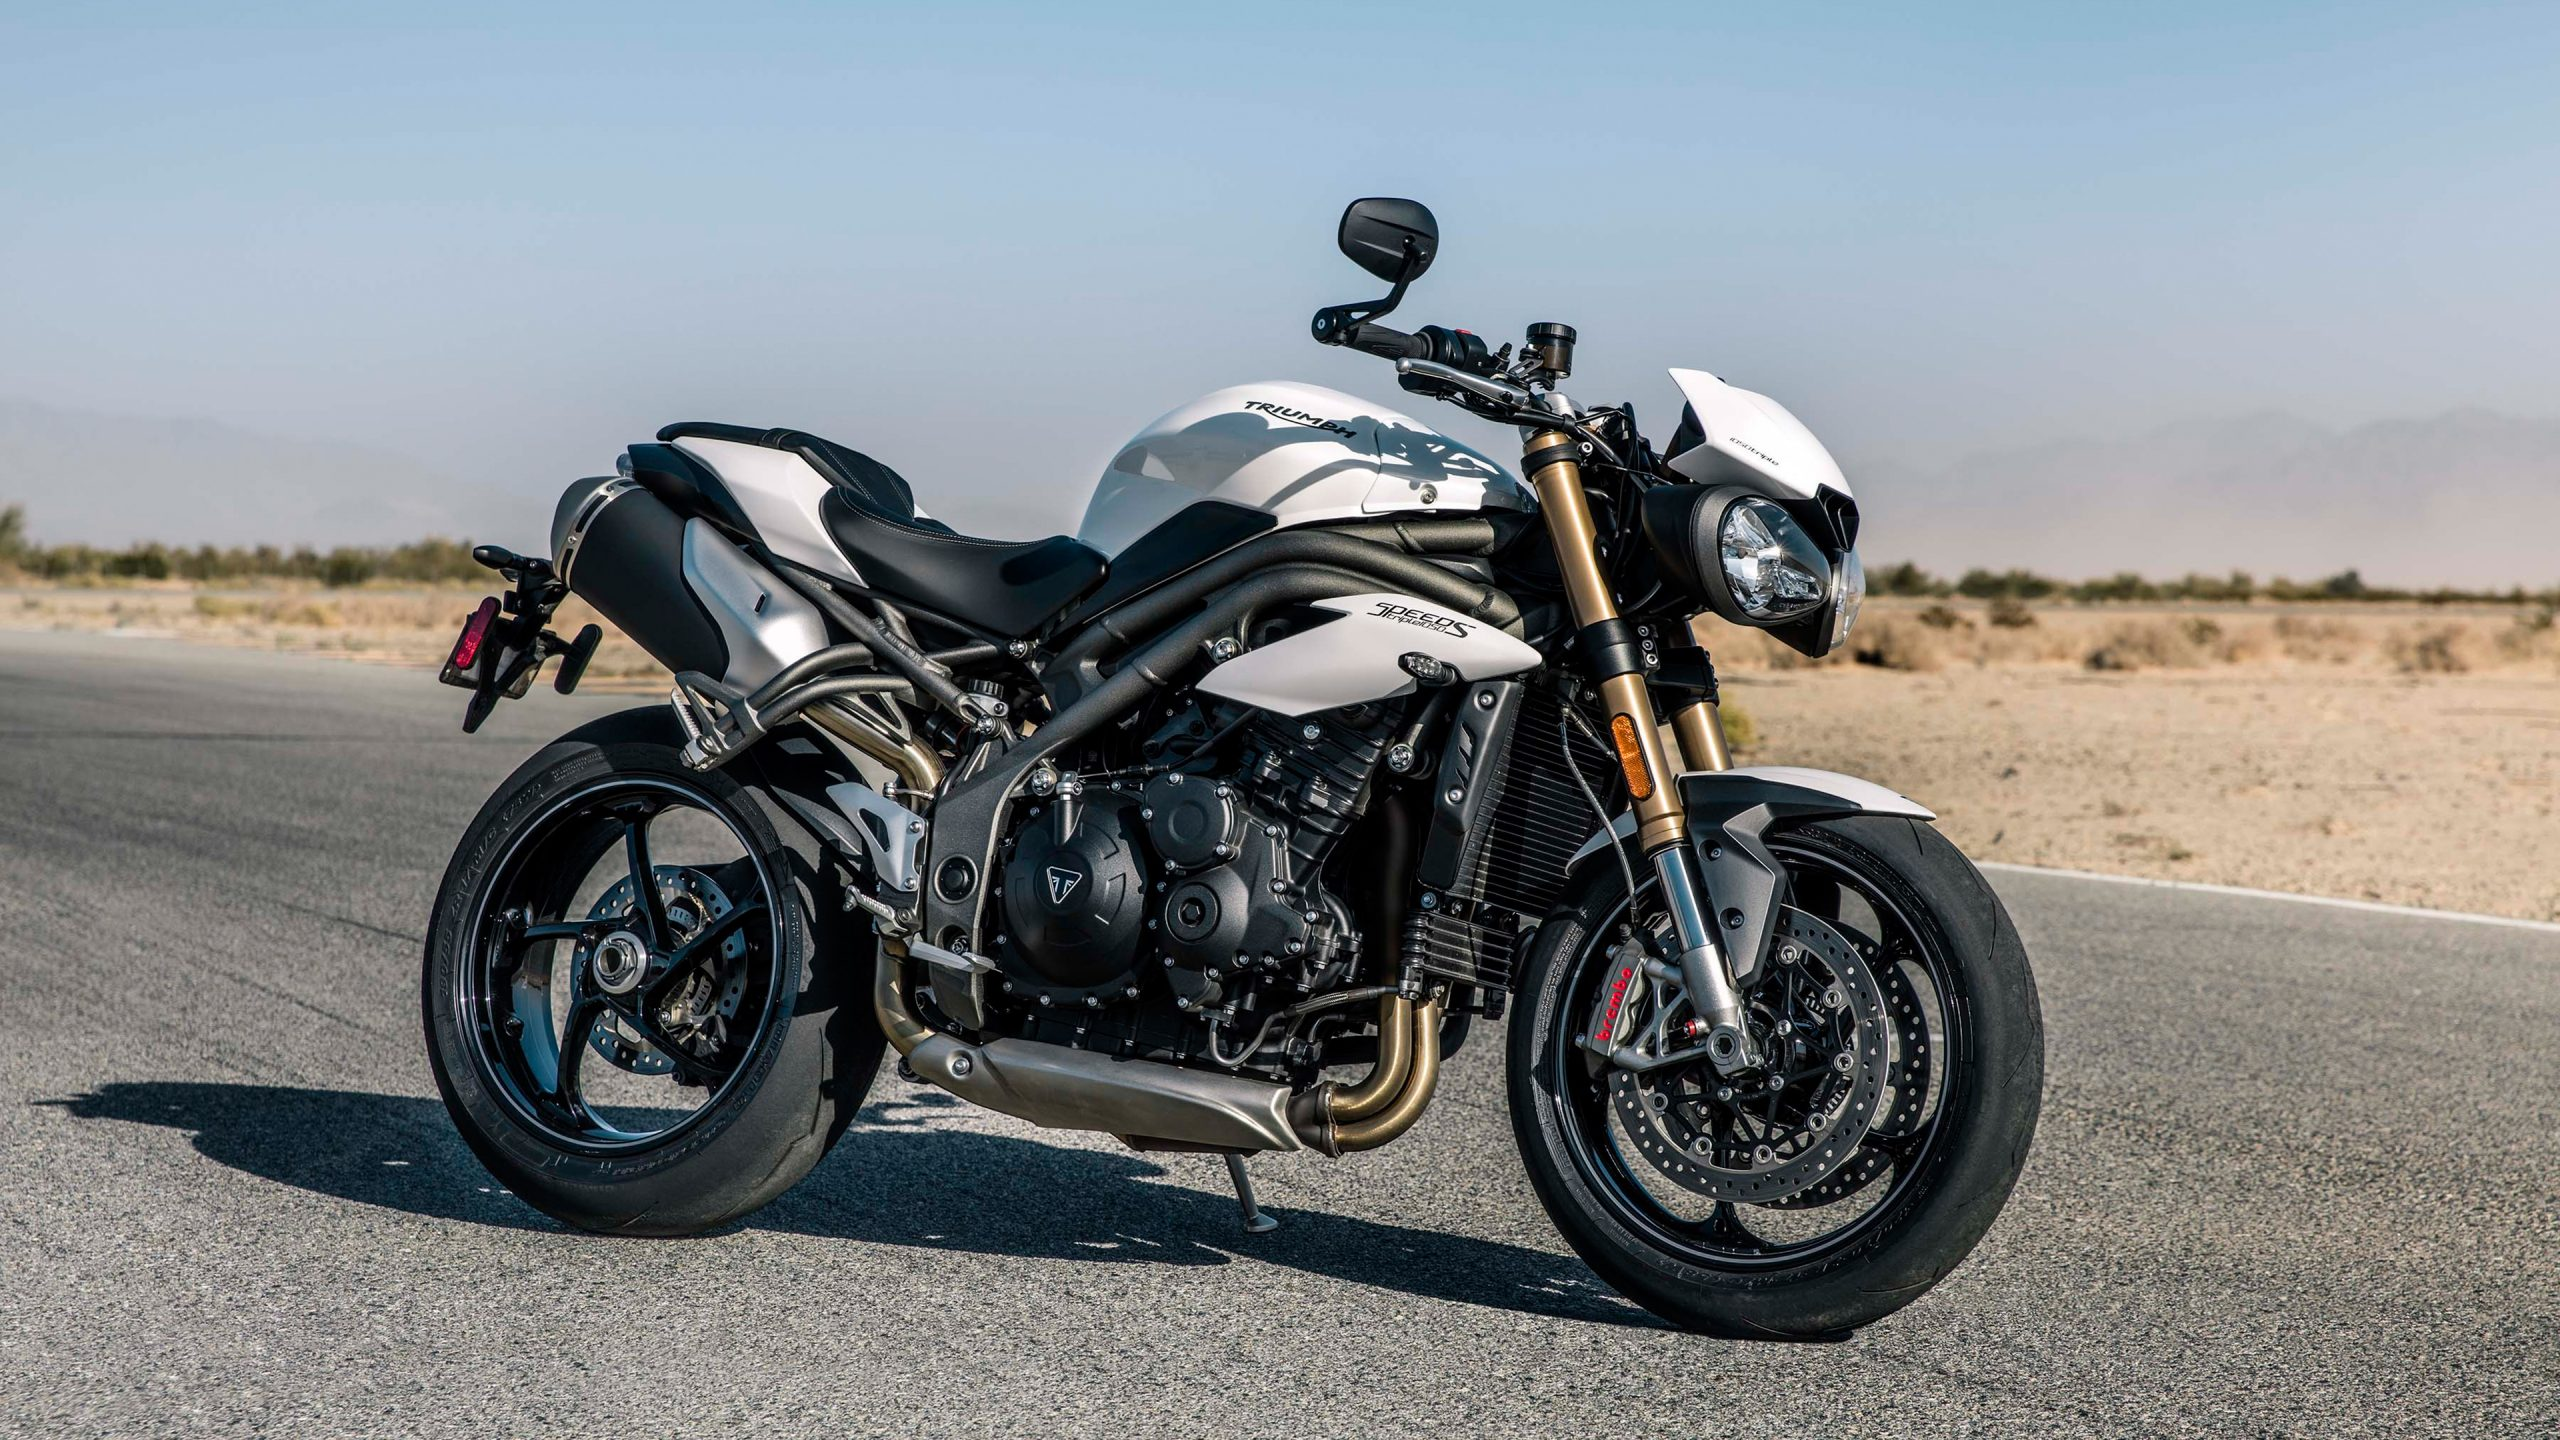 2018 Triumph Speed Triple S 4K Wallpaper Download